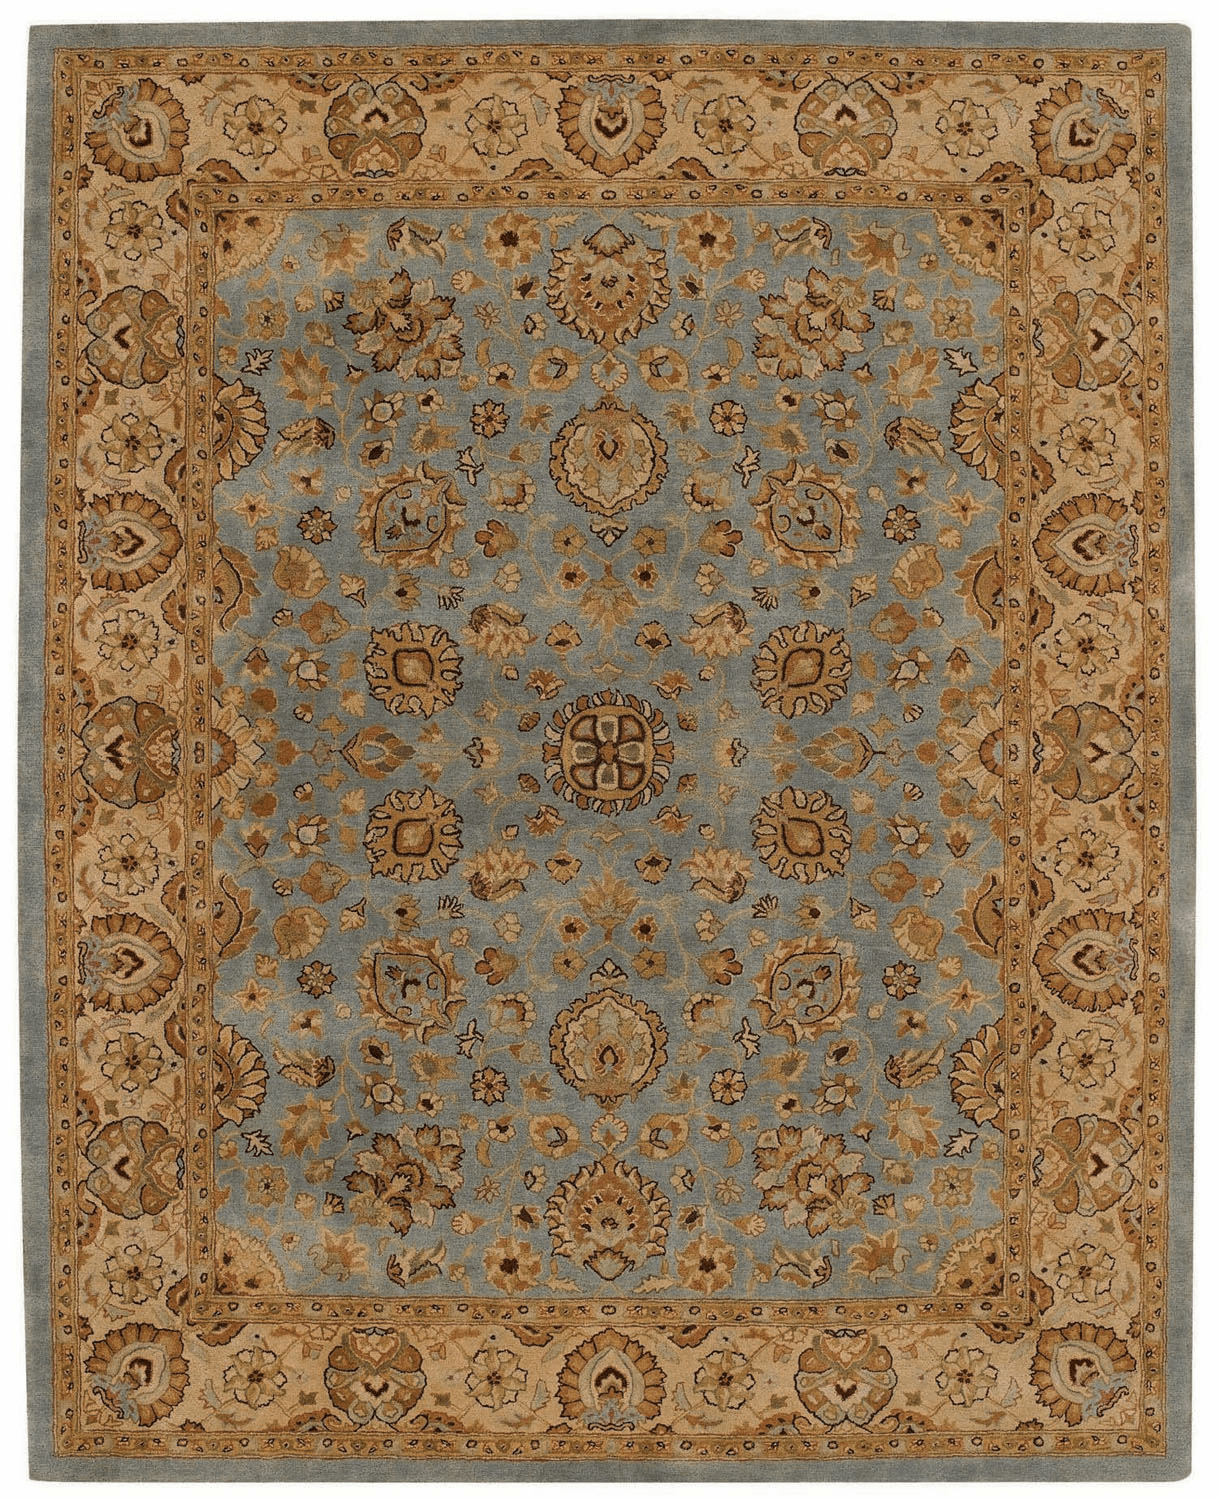 Hand Tufted Medium Blue and Gold Rug